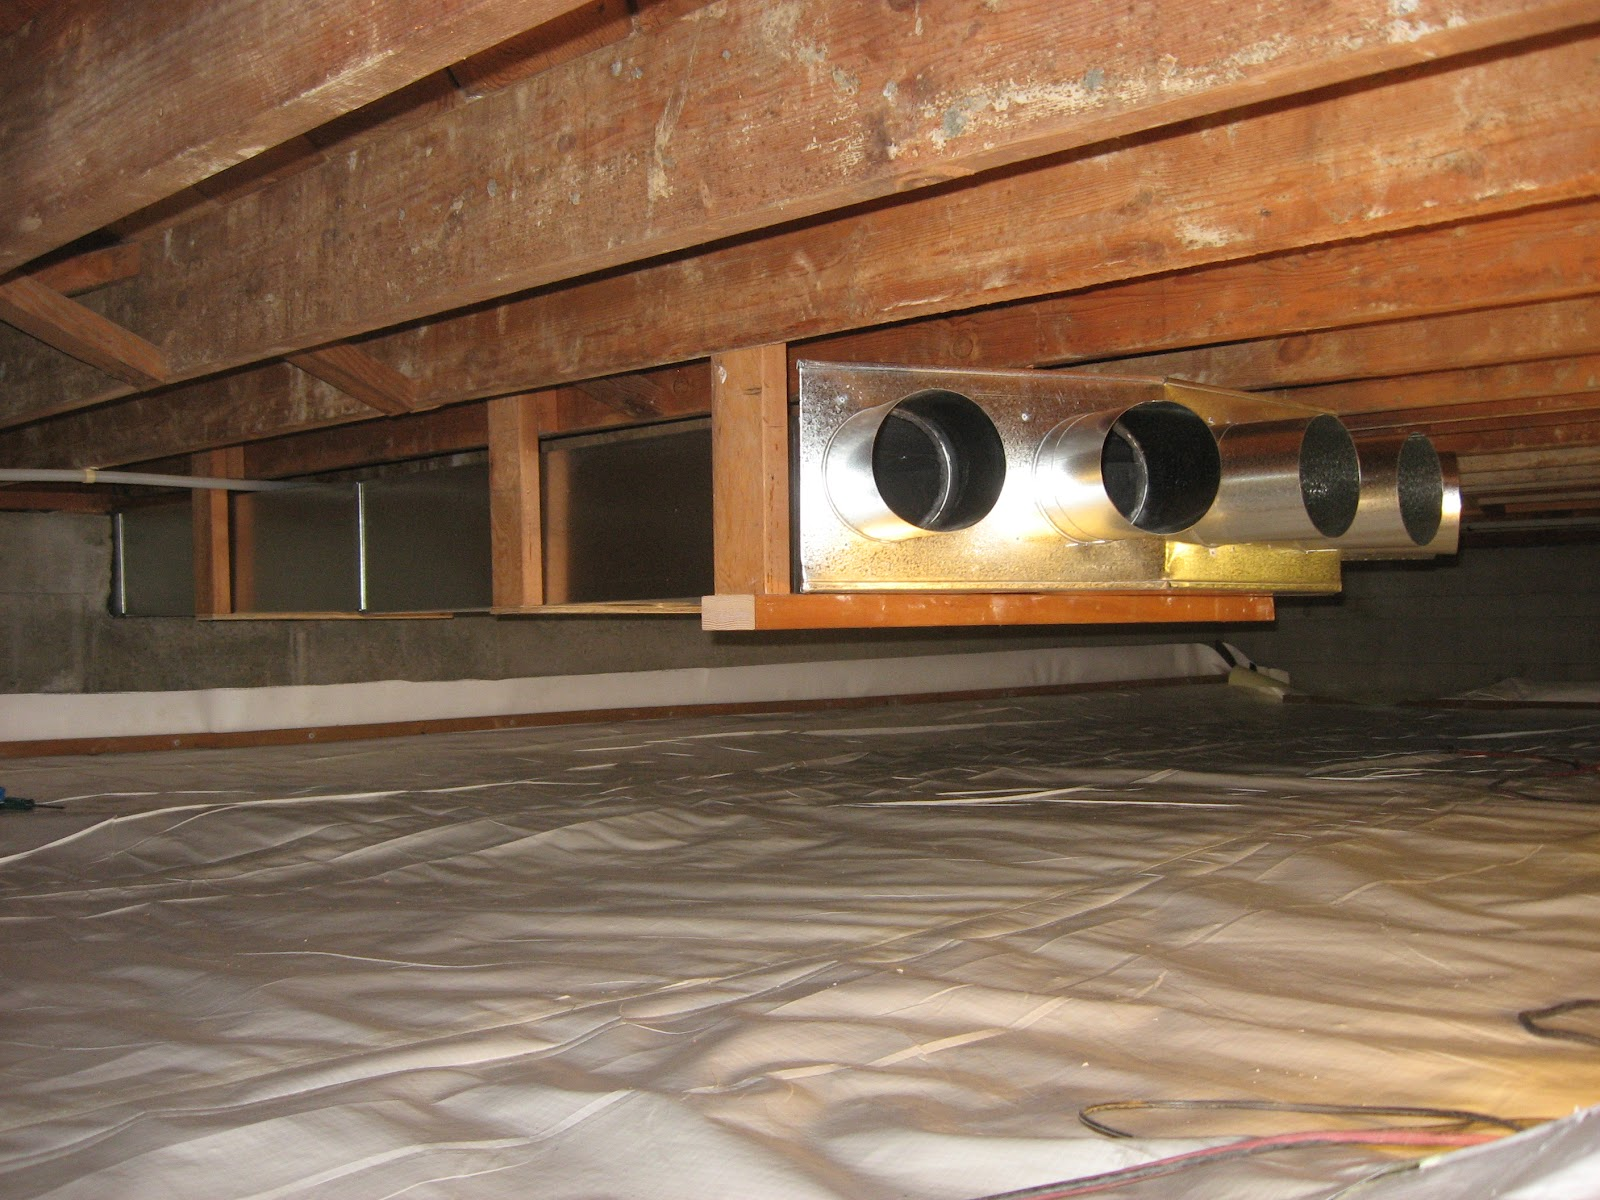 #AA8621 Energy Conservation How To: Steel Ducts Heat Capacity  Best 7133 Warm Air Heating Ducts photos with 1600x1200 px on helpvideos.info - Air Conditioners, Air Coolers and more